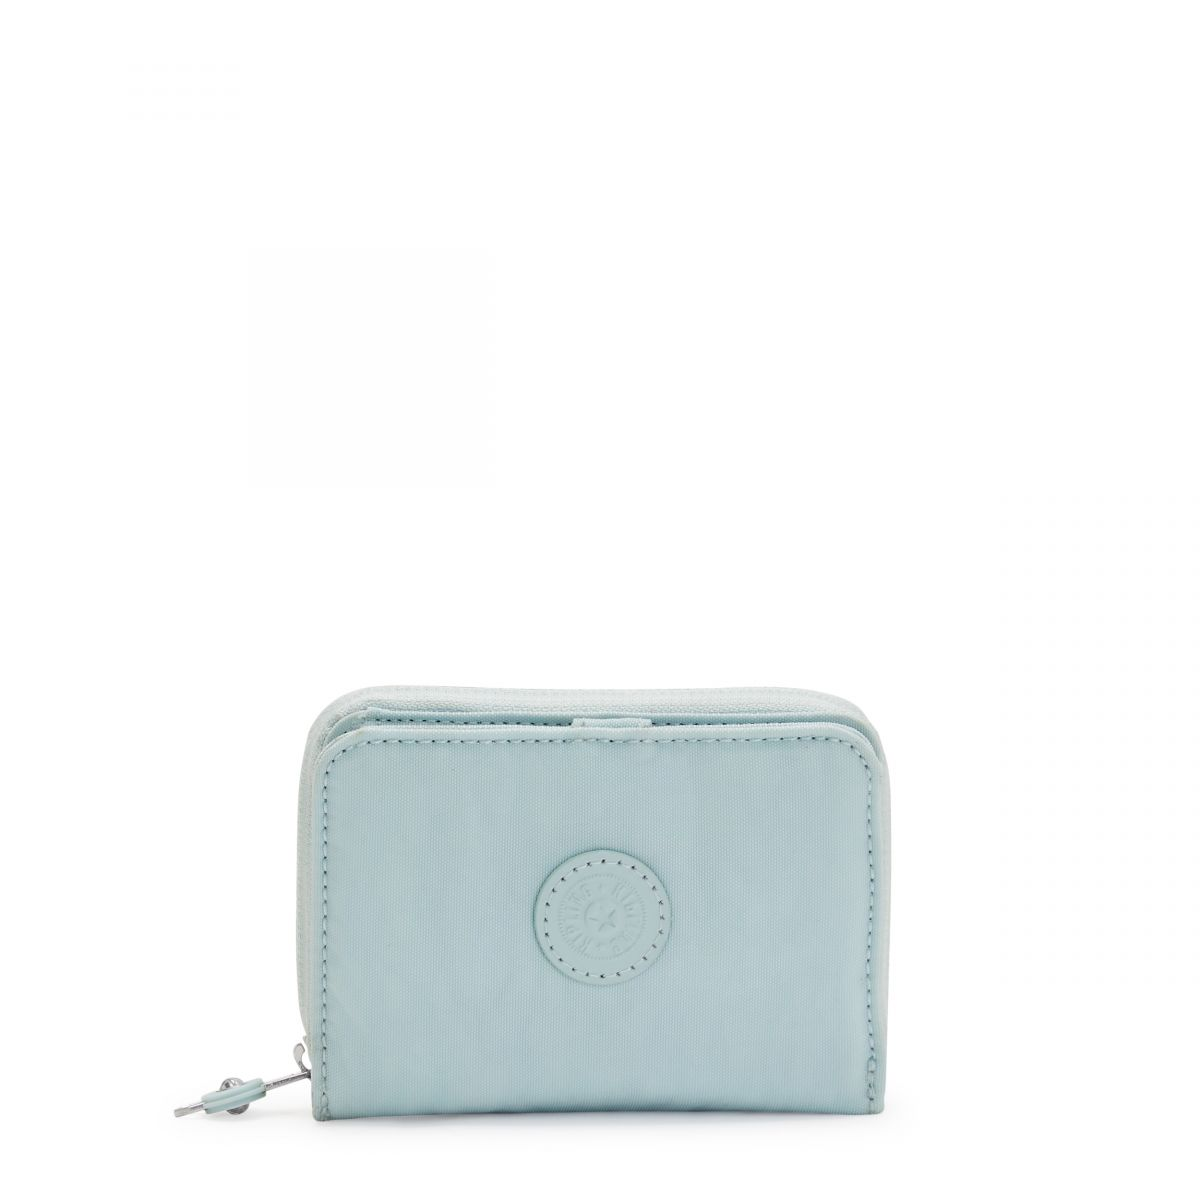 MONEY LOVE ACCESSORIES by Kipling - Front view